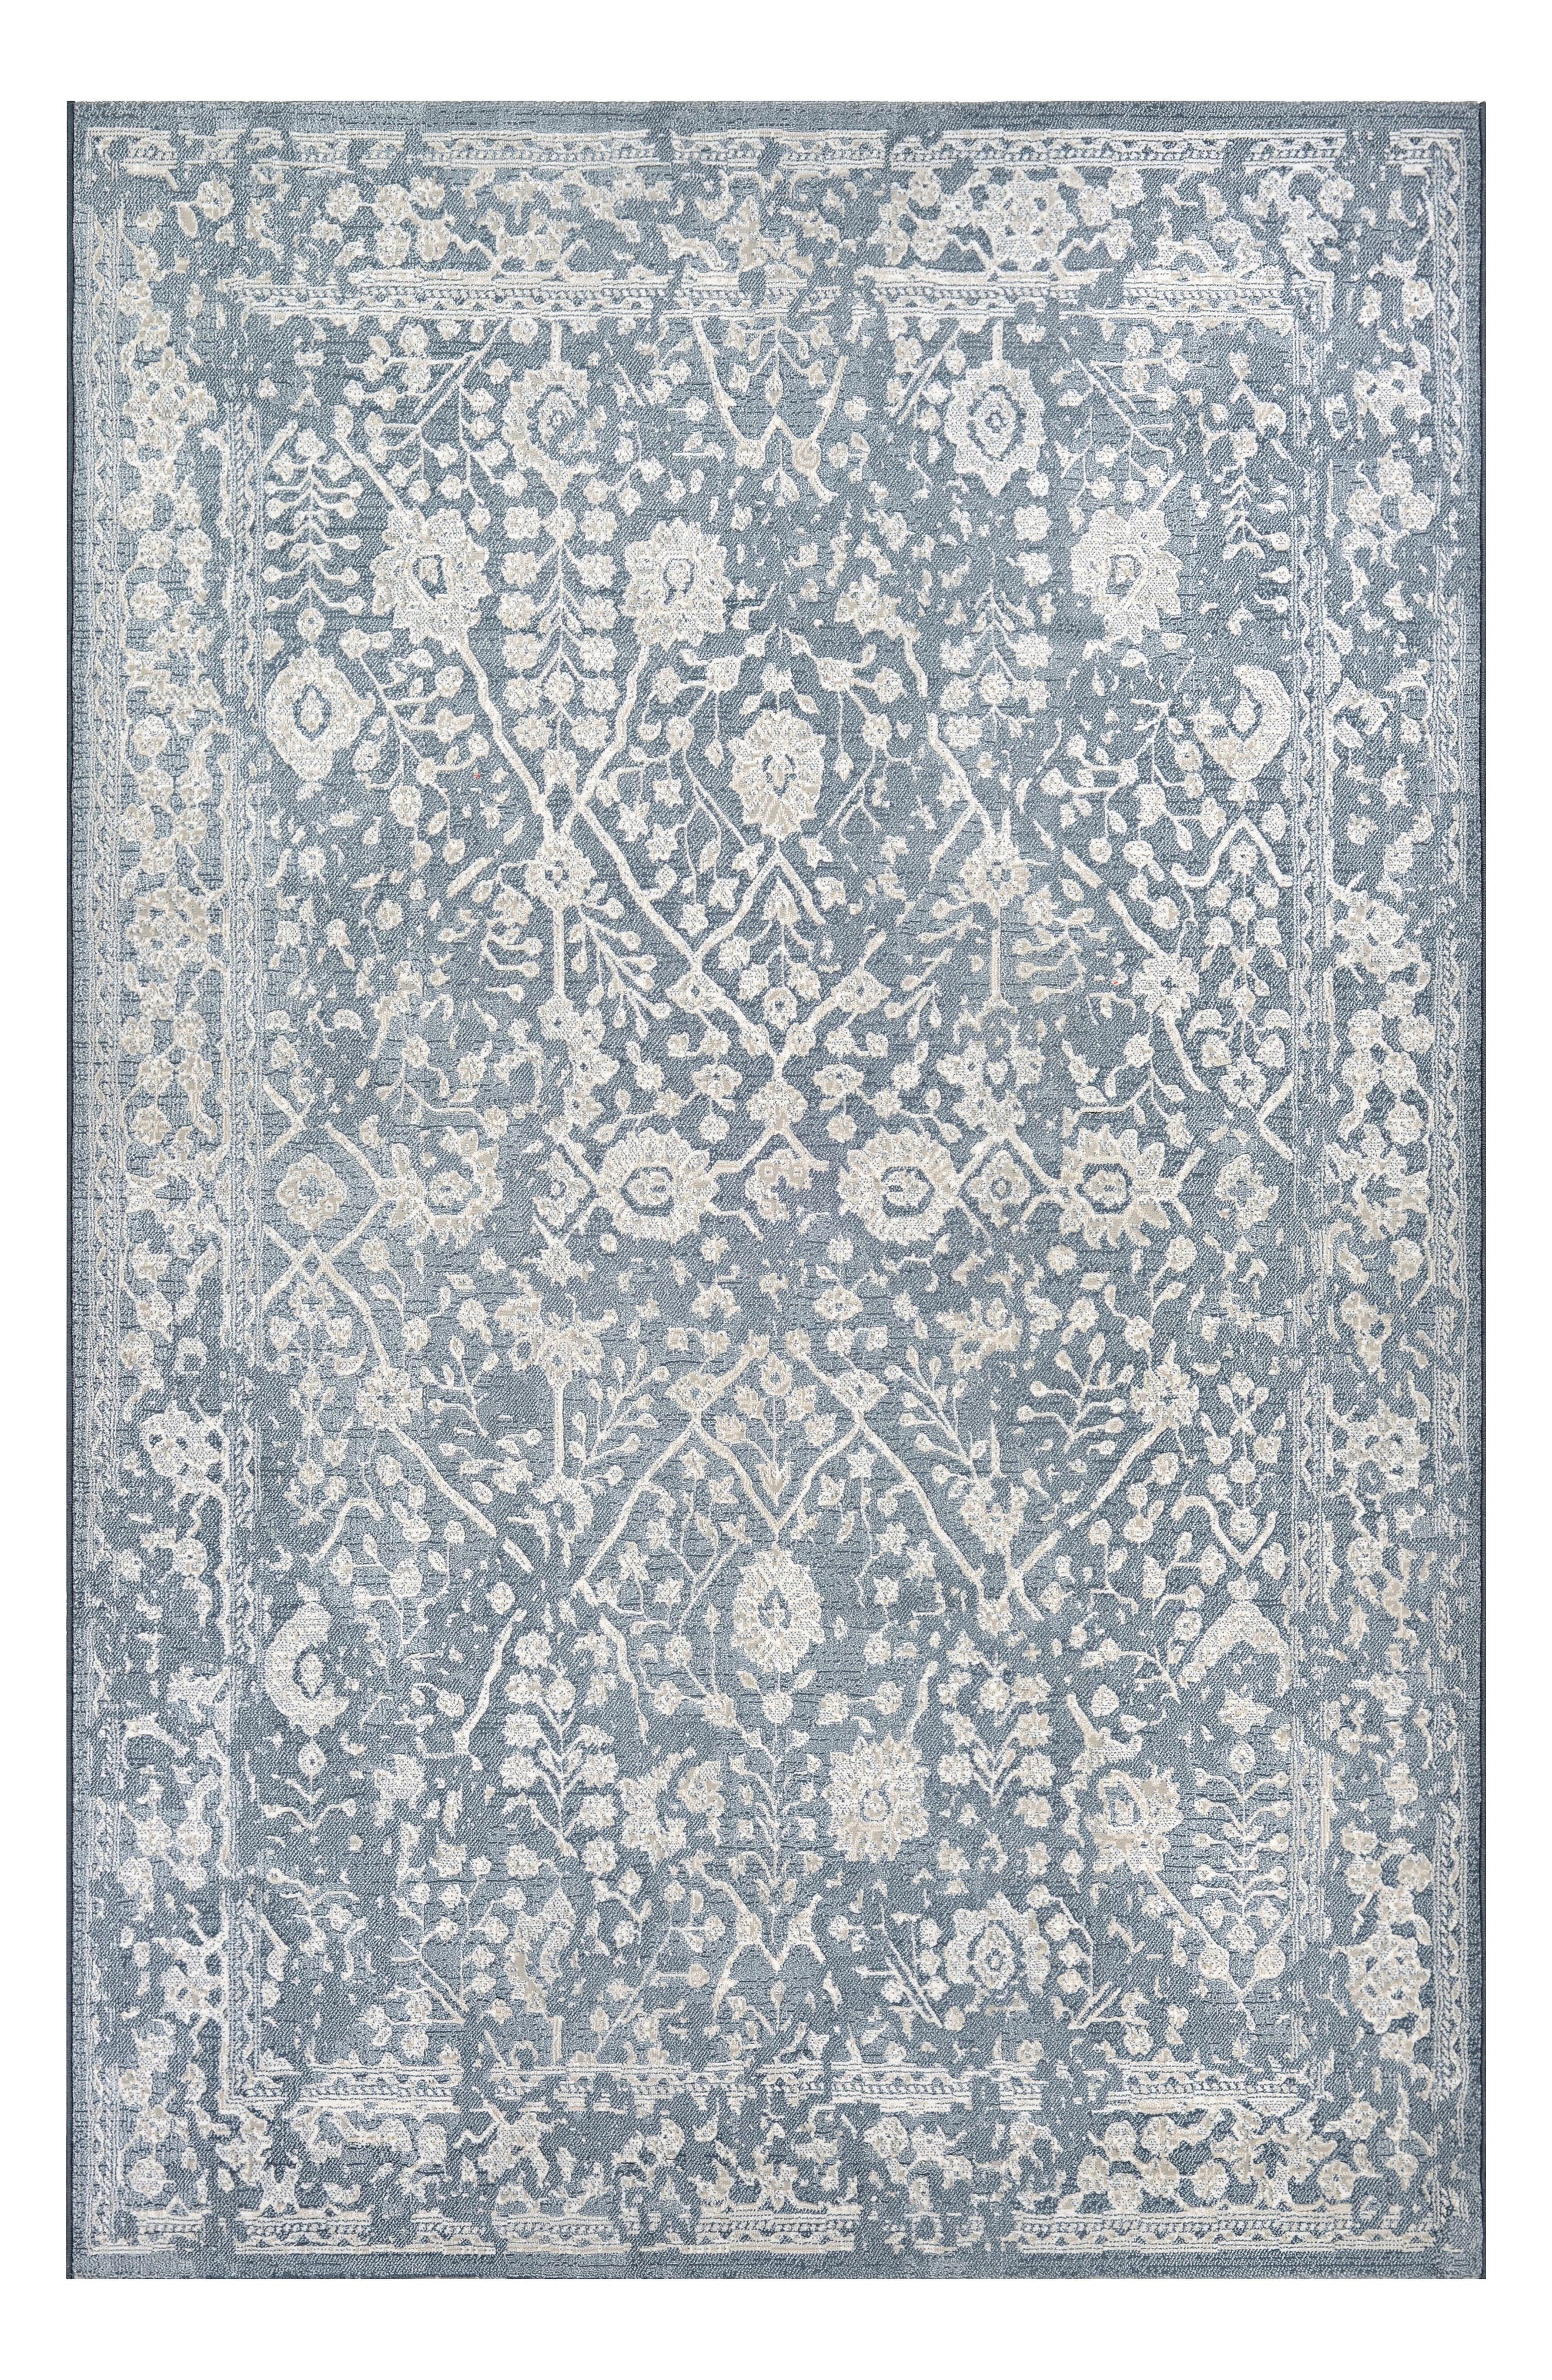 Vintage-inspired floral designs define a versatile rug woven from fade-resistant polypropylene, making it great for high-traffic areas both inside and outside. Style Name: Couristan Lillian Indoor/outdoor Rug. Style Number: 5366850. Available in stores.